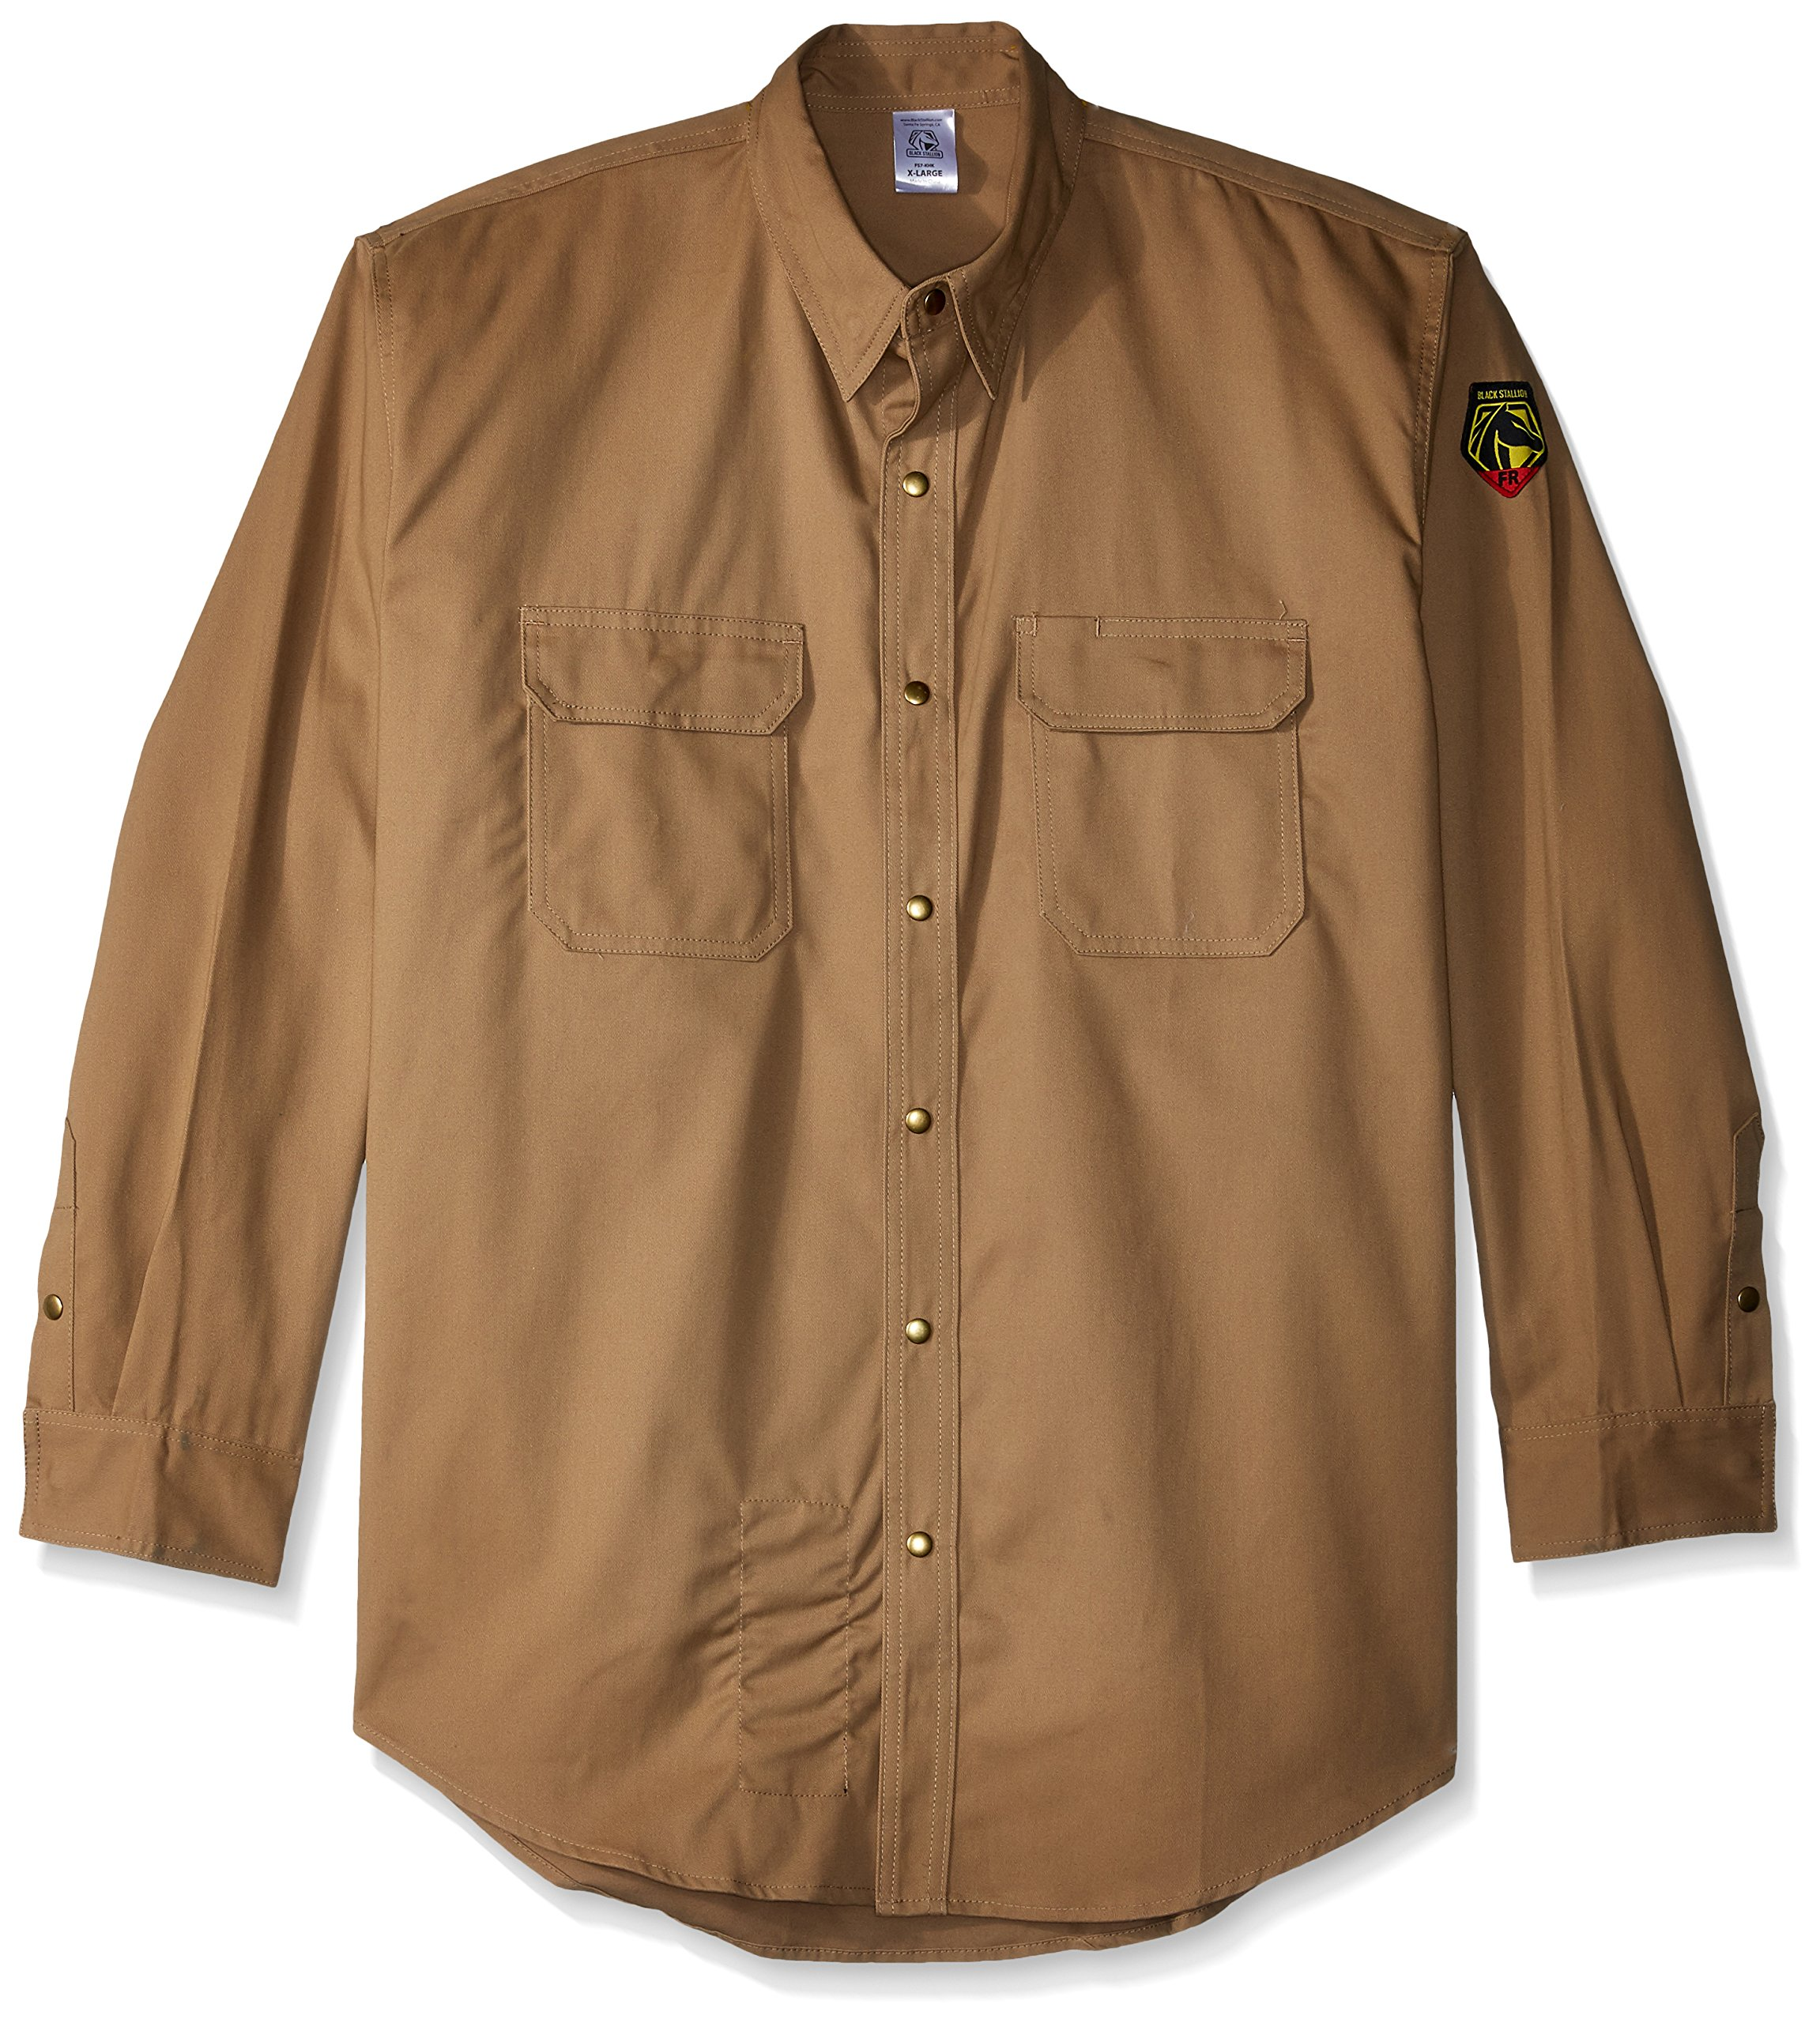 Revco - FS7 - Khaki - Xlarge Stallon FR Flame Resistant Cotton Work Shirt, FS7-KHK, Black, X-Large